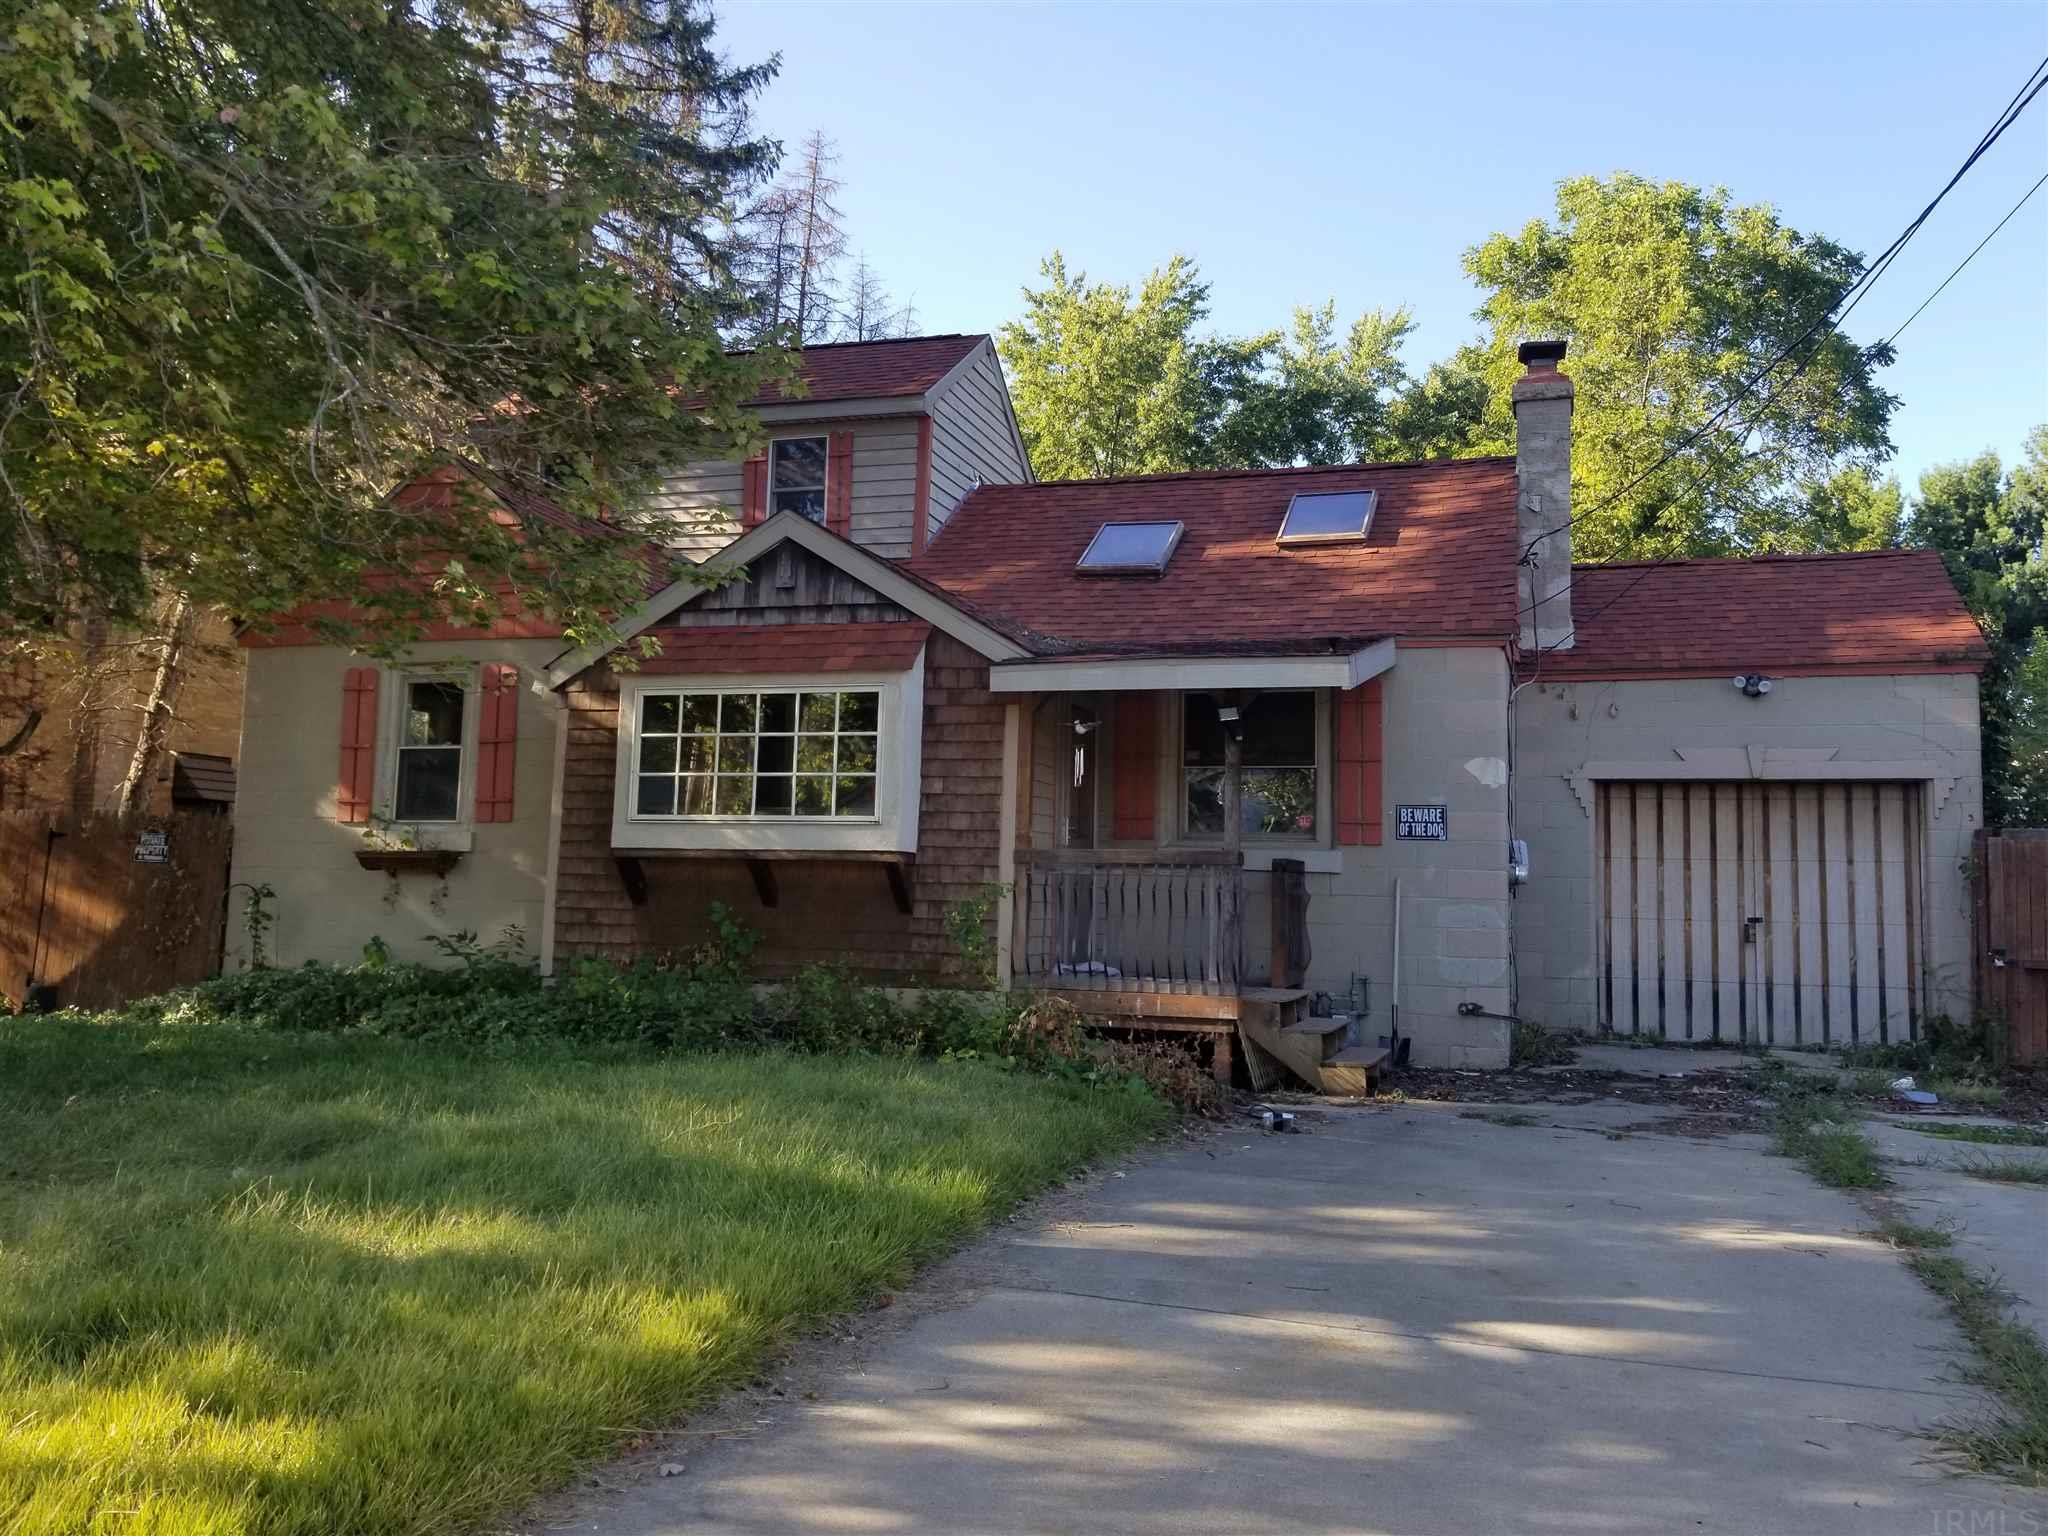 127 Murray South Bend, IN 46637